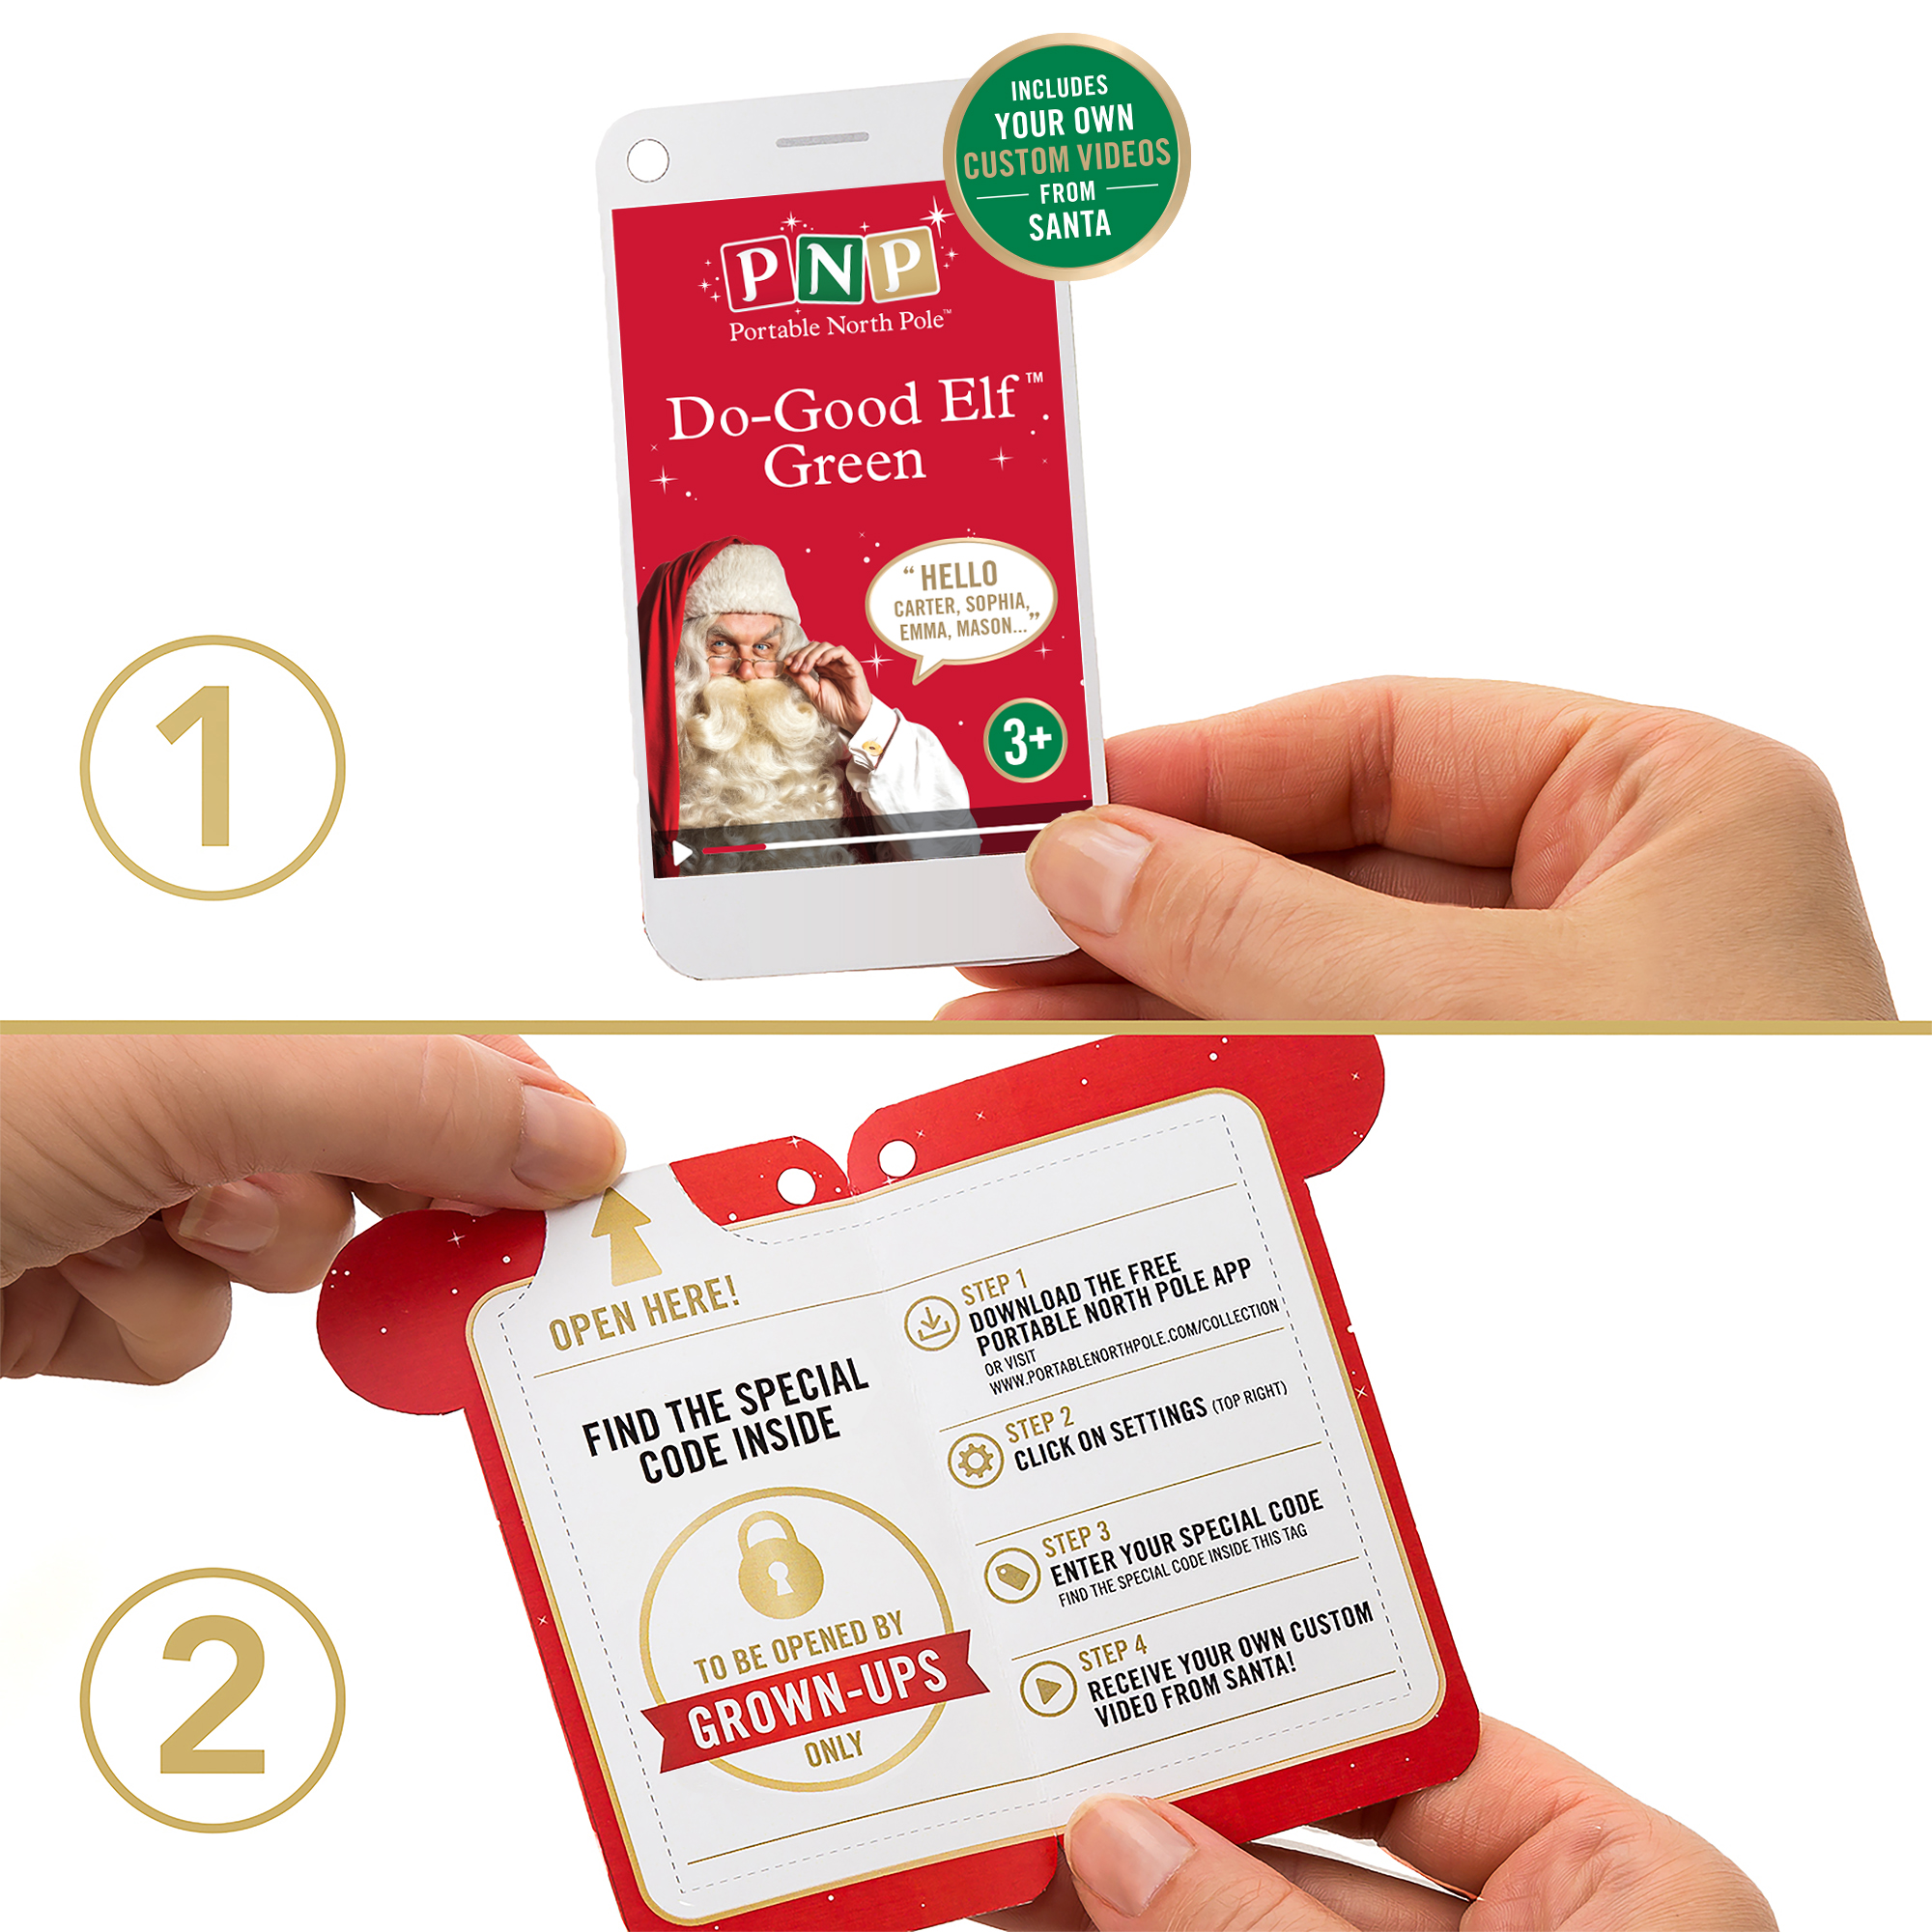 Portable north pole santa letter kit with personalized video.